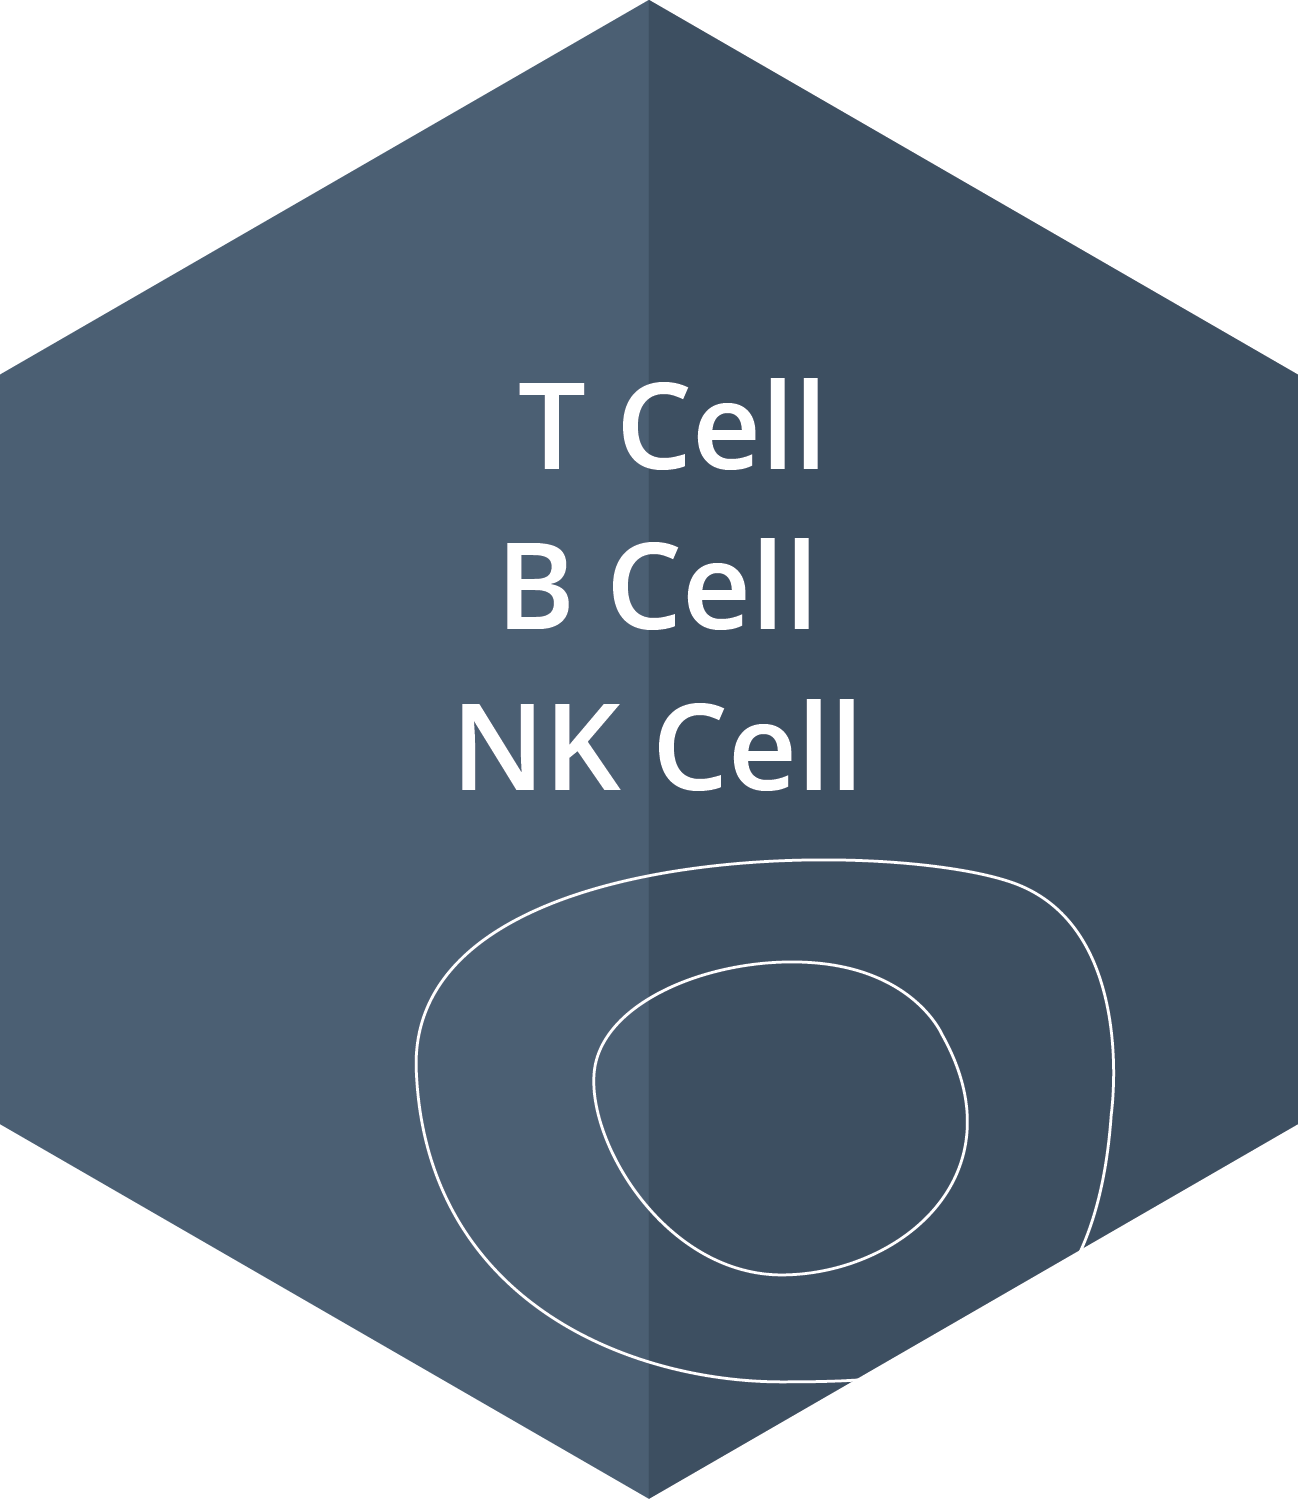 T Cell, B Cell, NK Cell